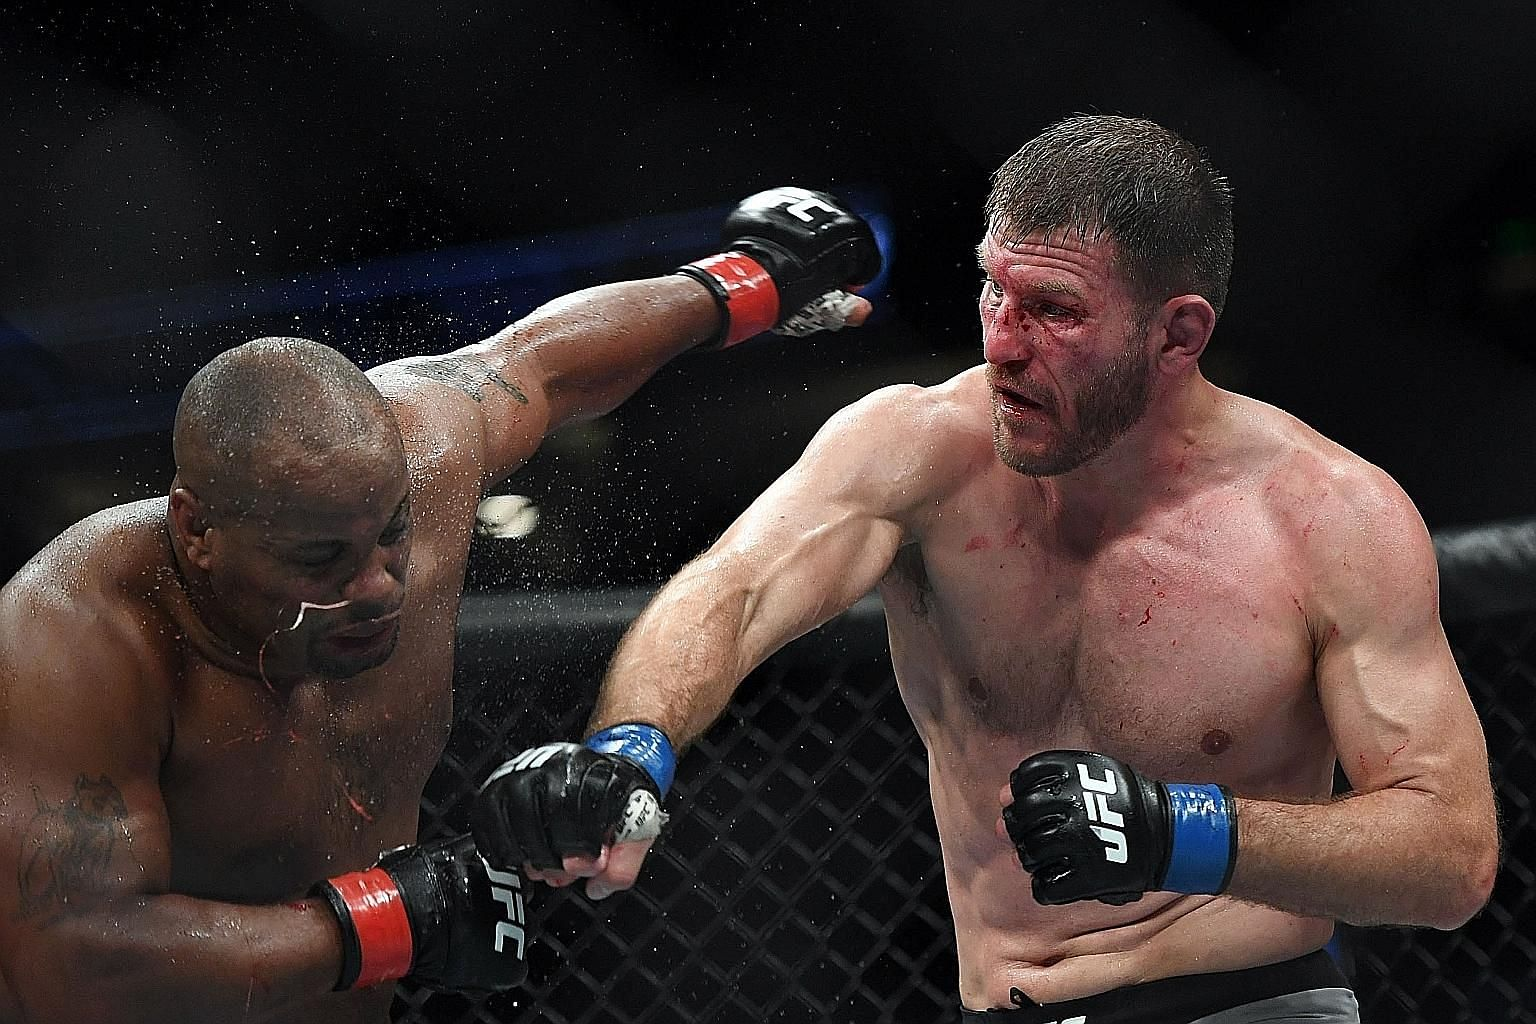 Stipe Miocic punishing Daniel Cormier with a heavy blow during their UFC 241 heavyweight title bout at Honda Center in Anaheim on Saturday. Miocic won with a fourth-round knockout. PHOTO: DPA